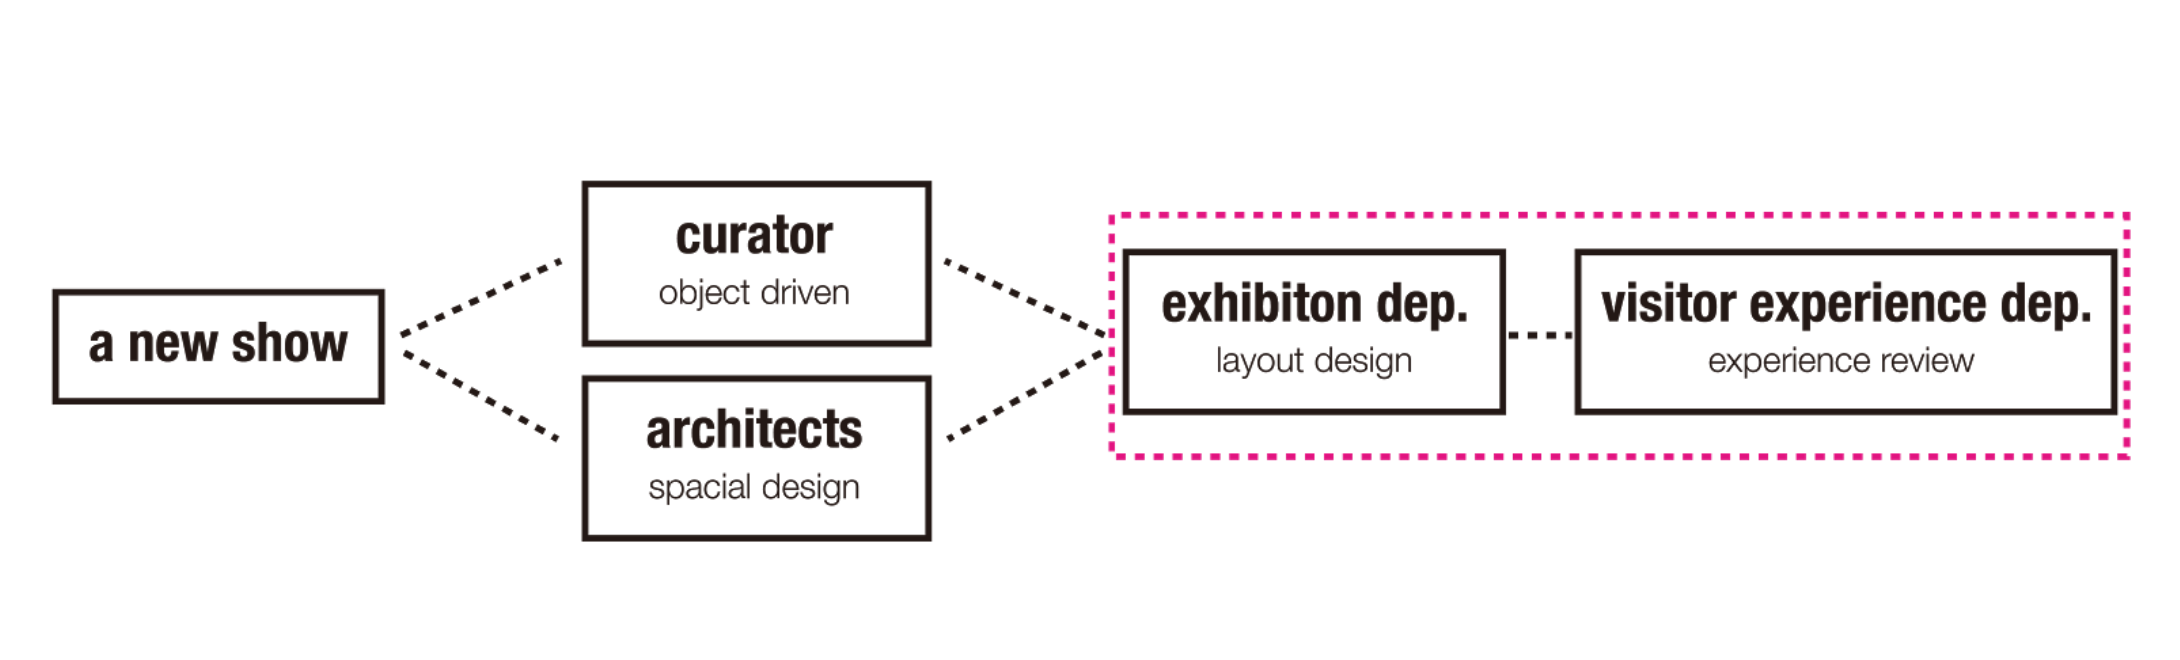 Our intervention point would be at the stage of specific exhibition layout design and experience review.